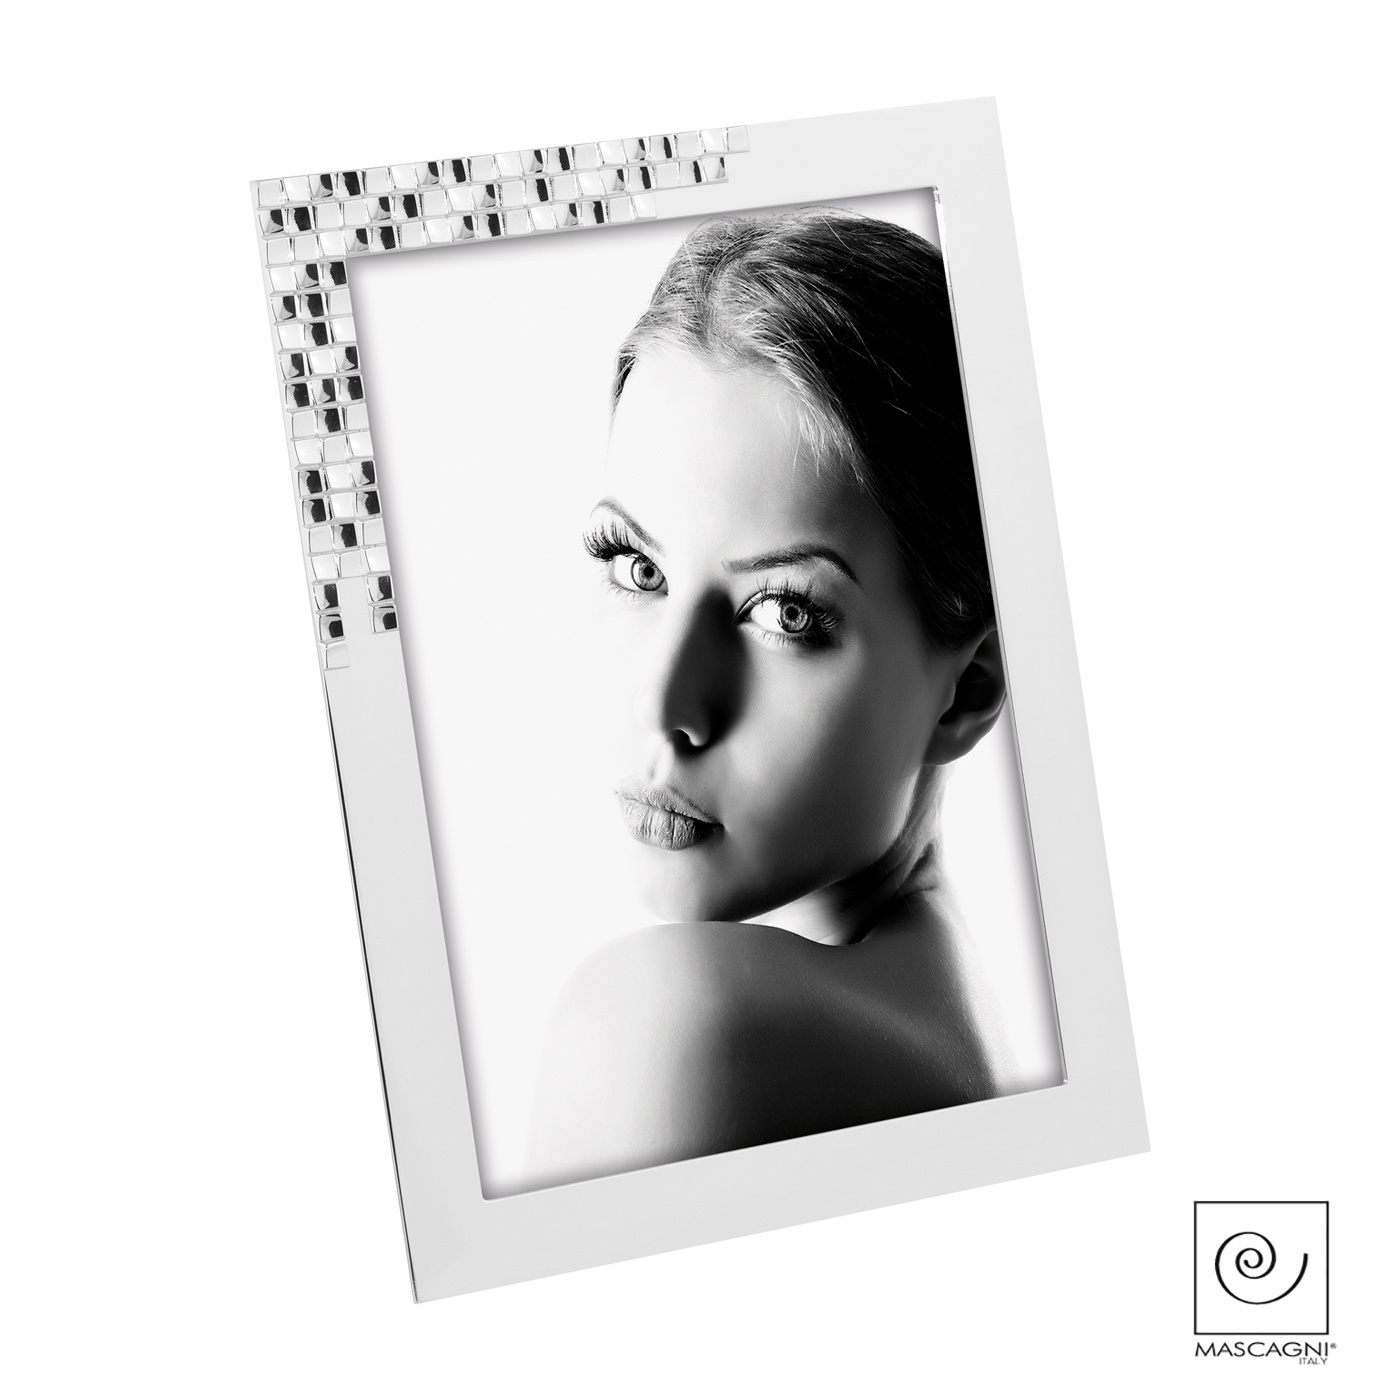 Art Mascagni A1057 PHOTO FRAME 13X18